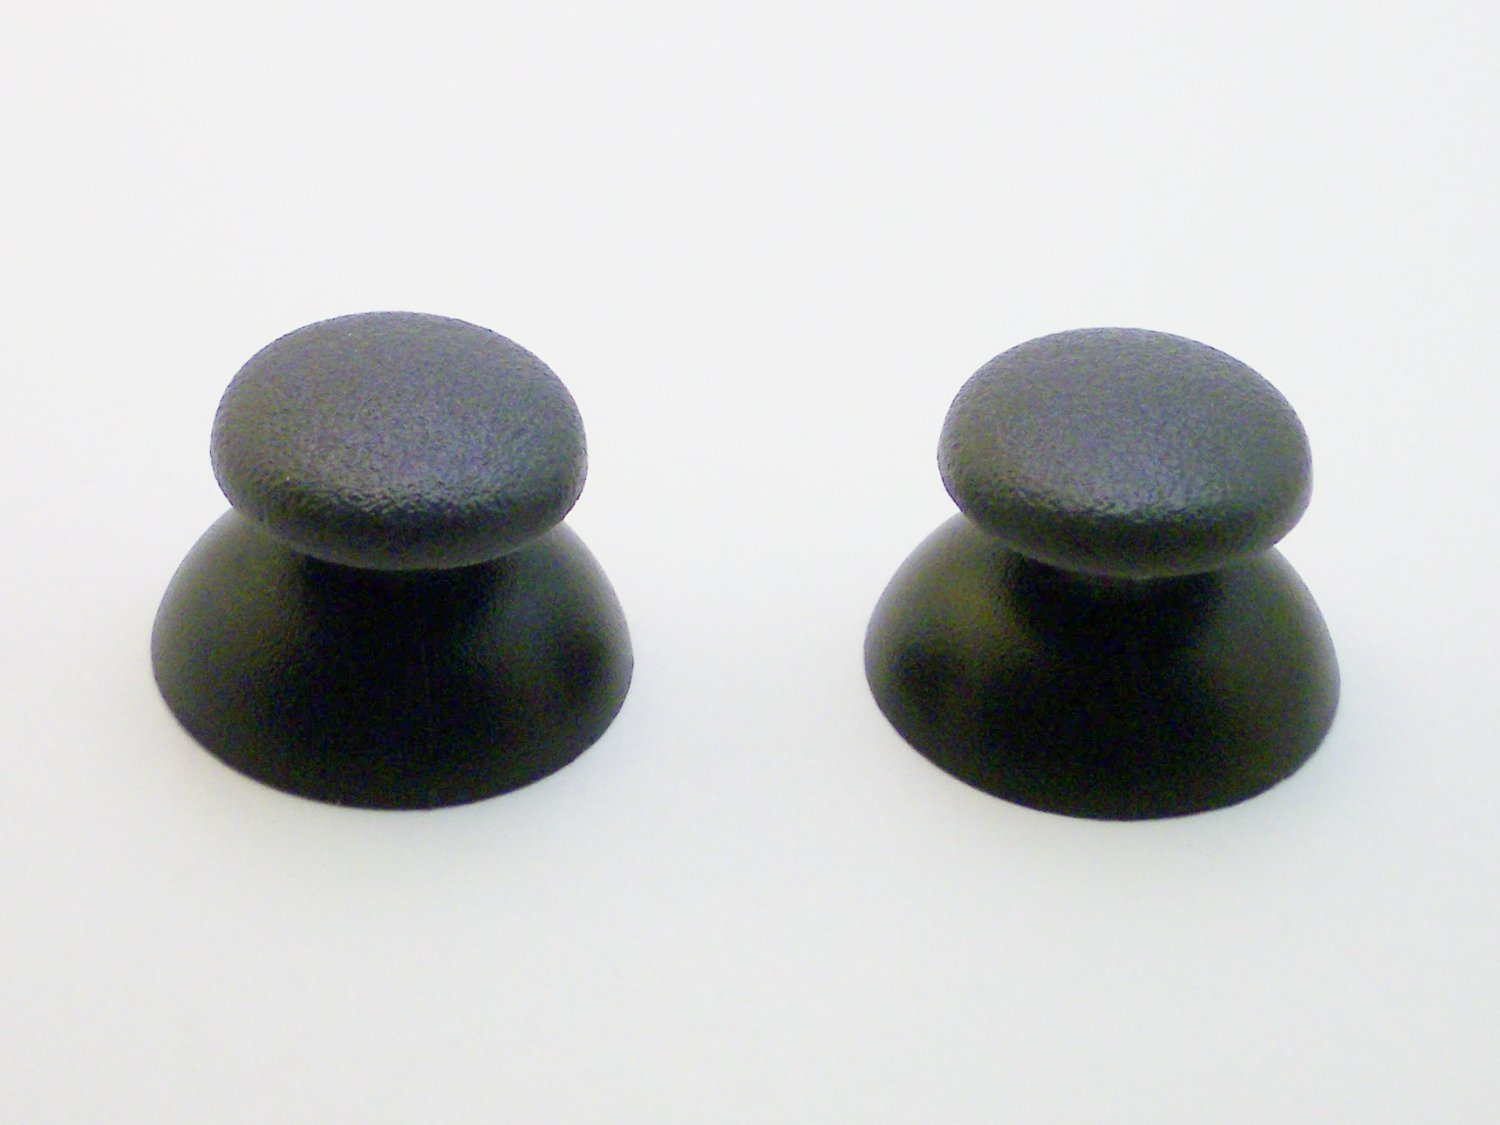 4 Replacement Analog Thumbsticks For Sony PlayStation 1 2 3 Controllers